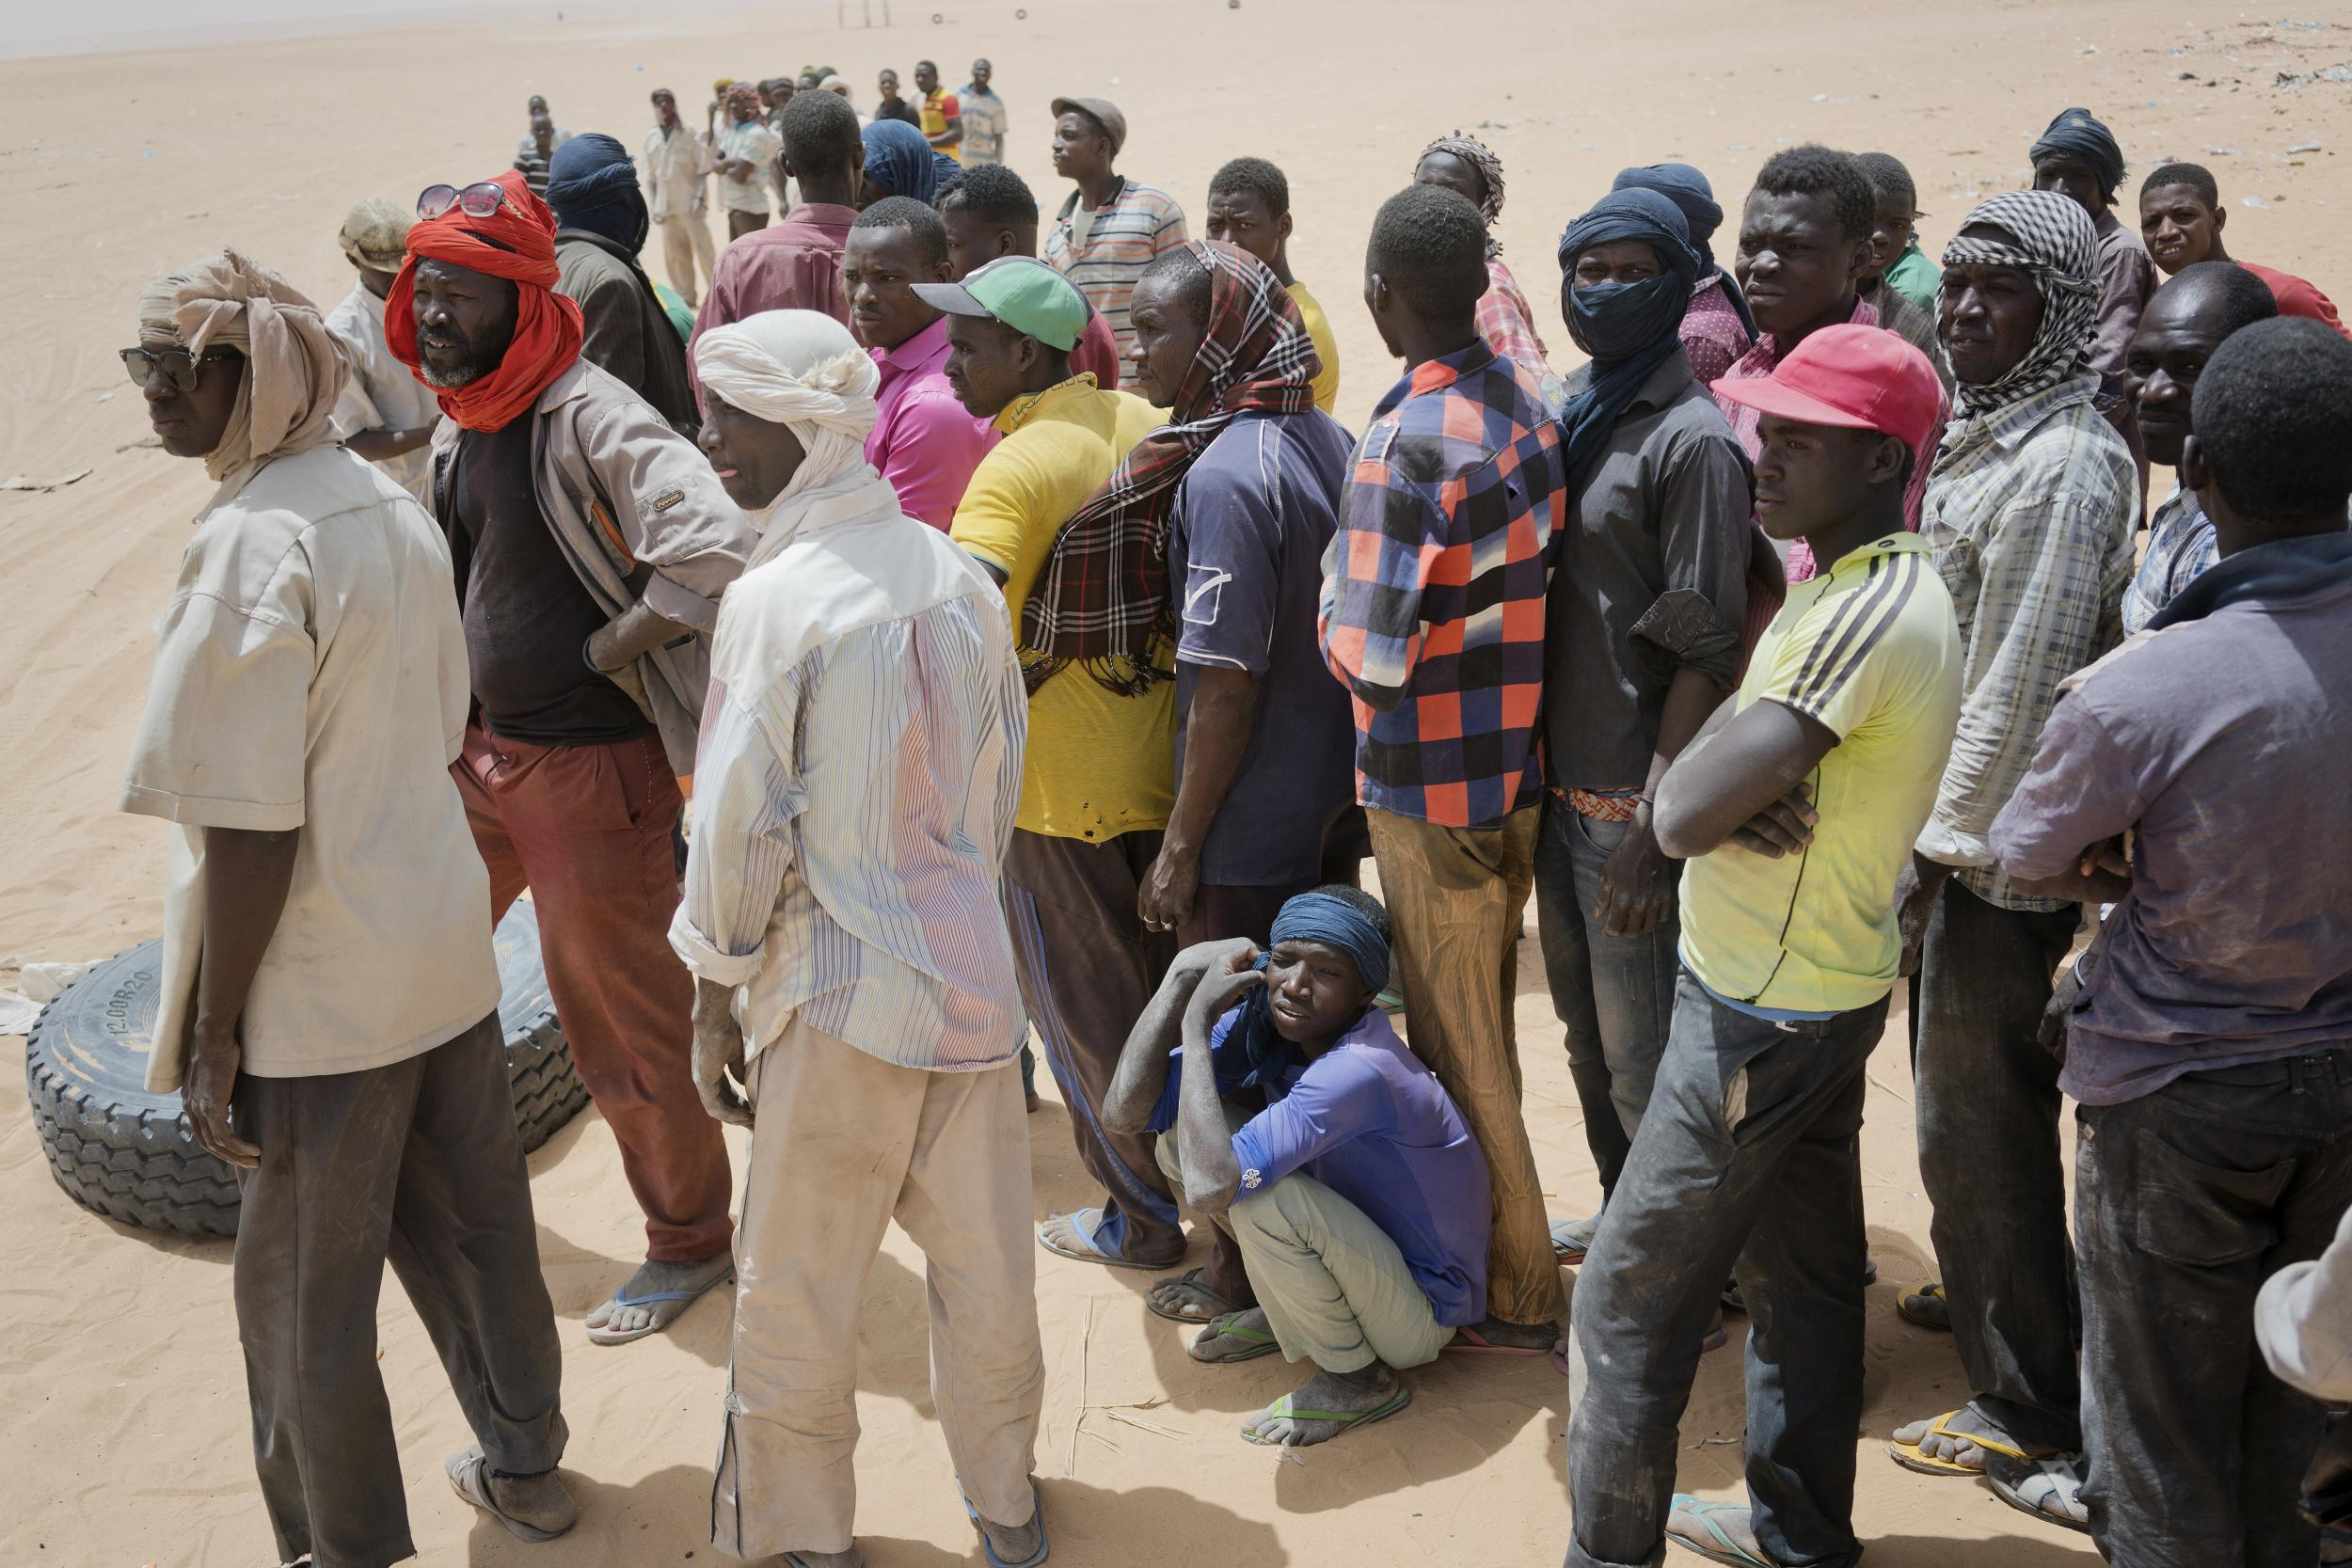 Algeria was accused of leaving 13,000 migrants, including pregnant women and children, in the desert 40